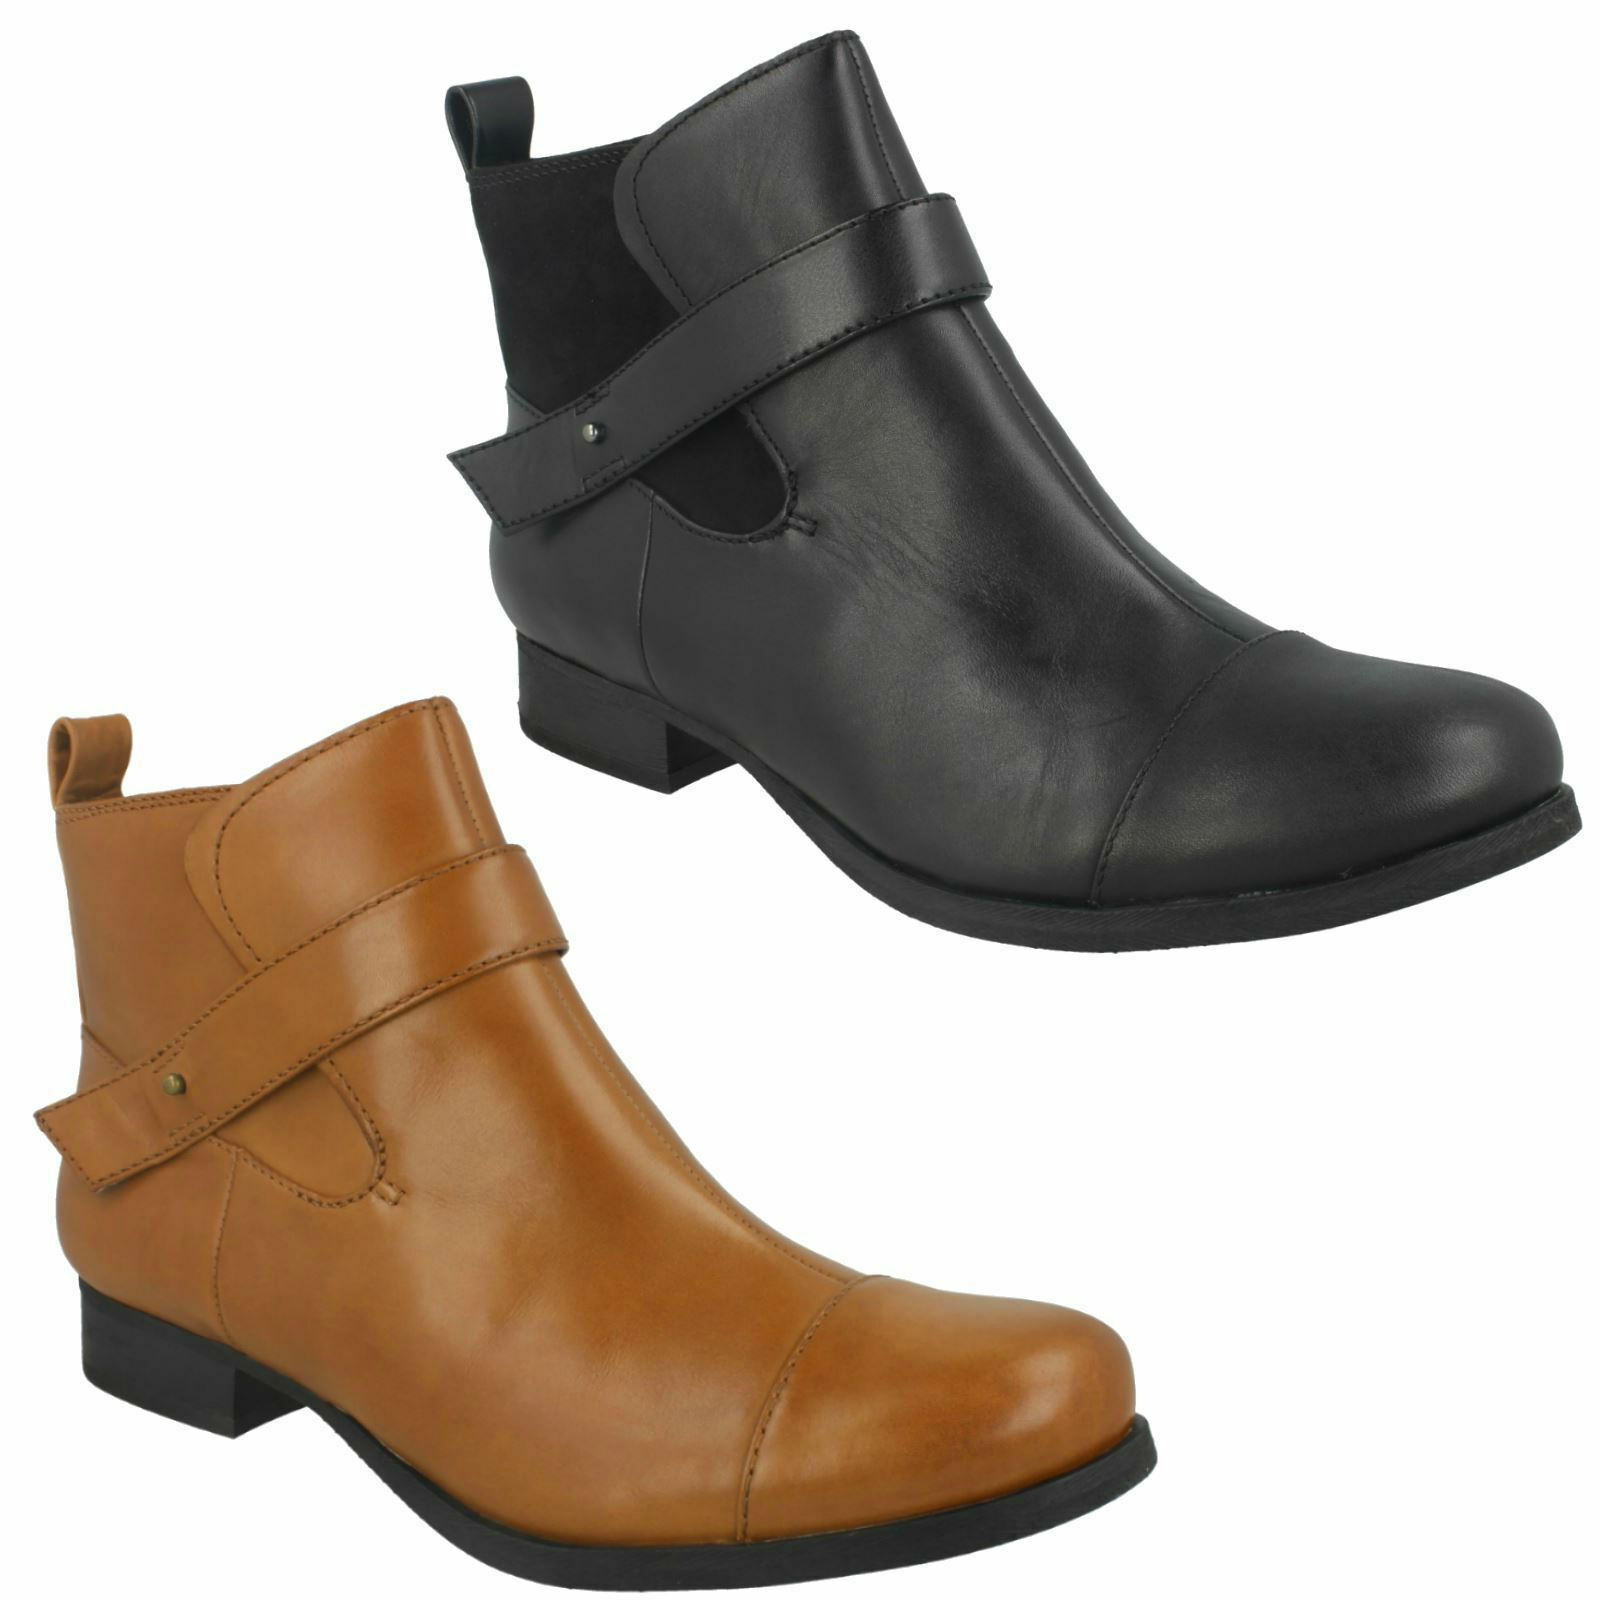 LADBROKE MAGIC LADIES CLARKS PULL ON CHELSEA LEATHER CASUAL ANKLE BOOTS SIZE